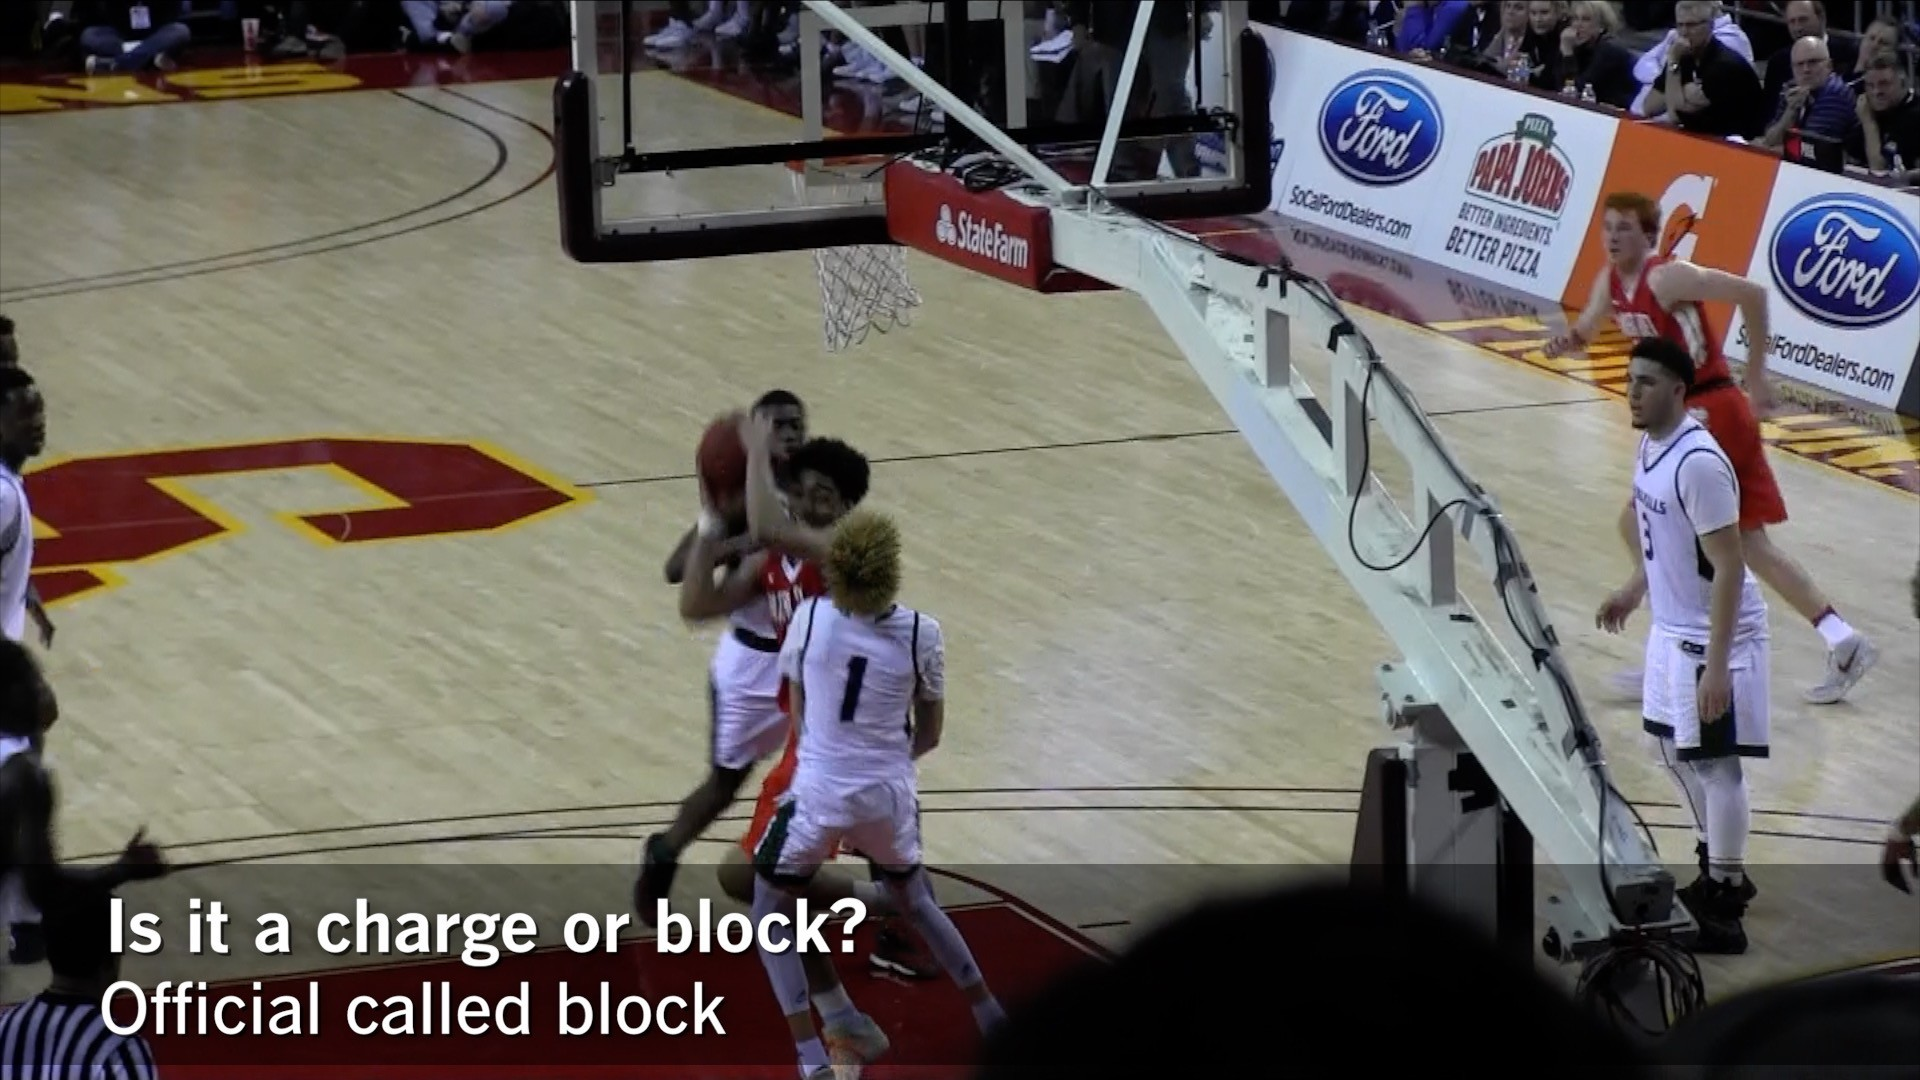 Boys' basketball: Is it a blocking or charging foul?